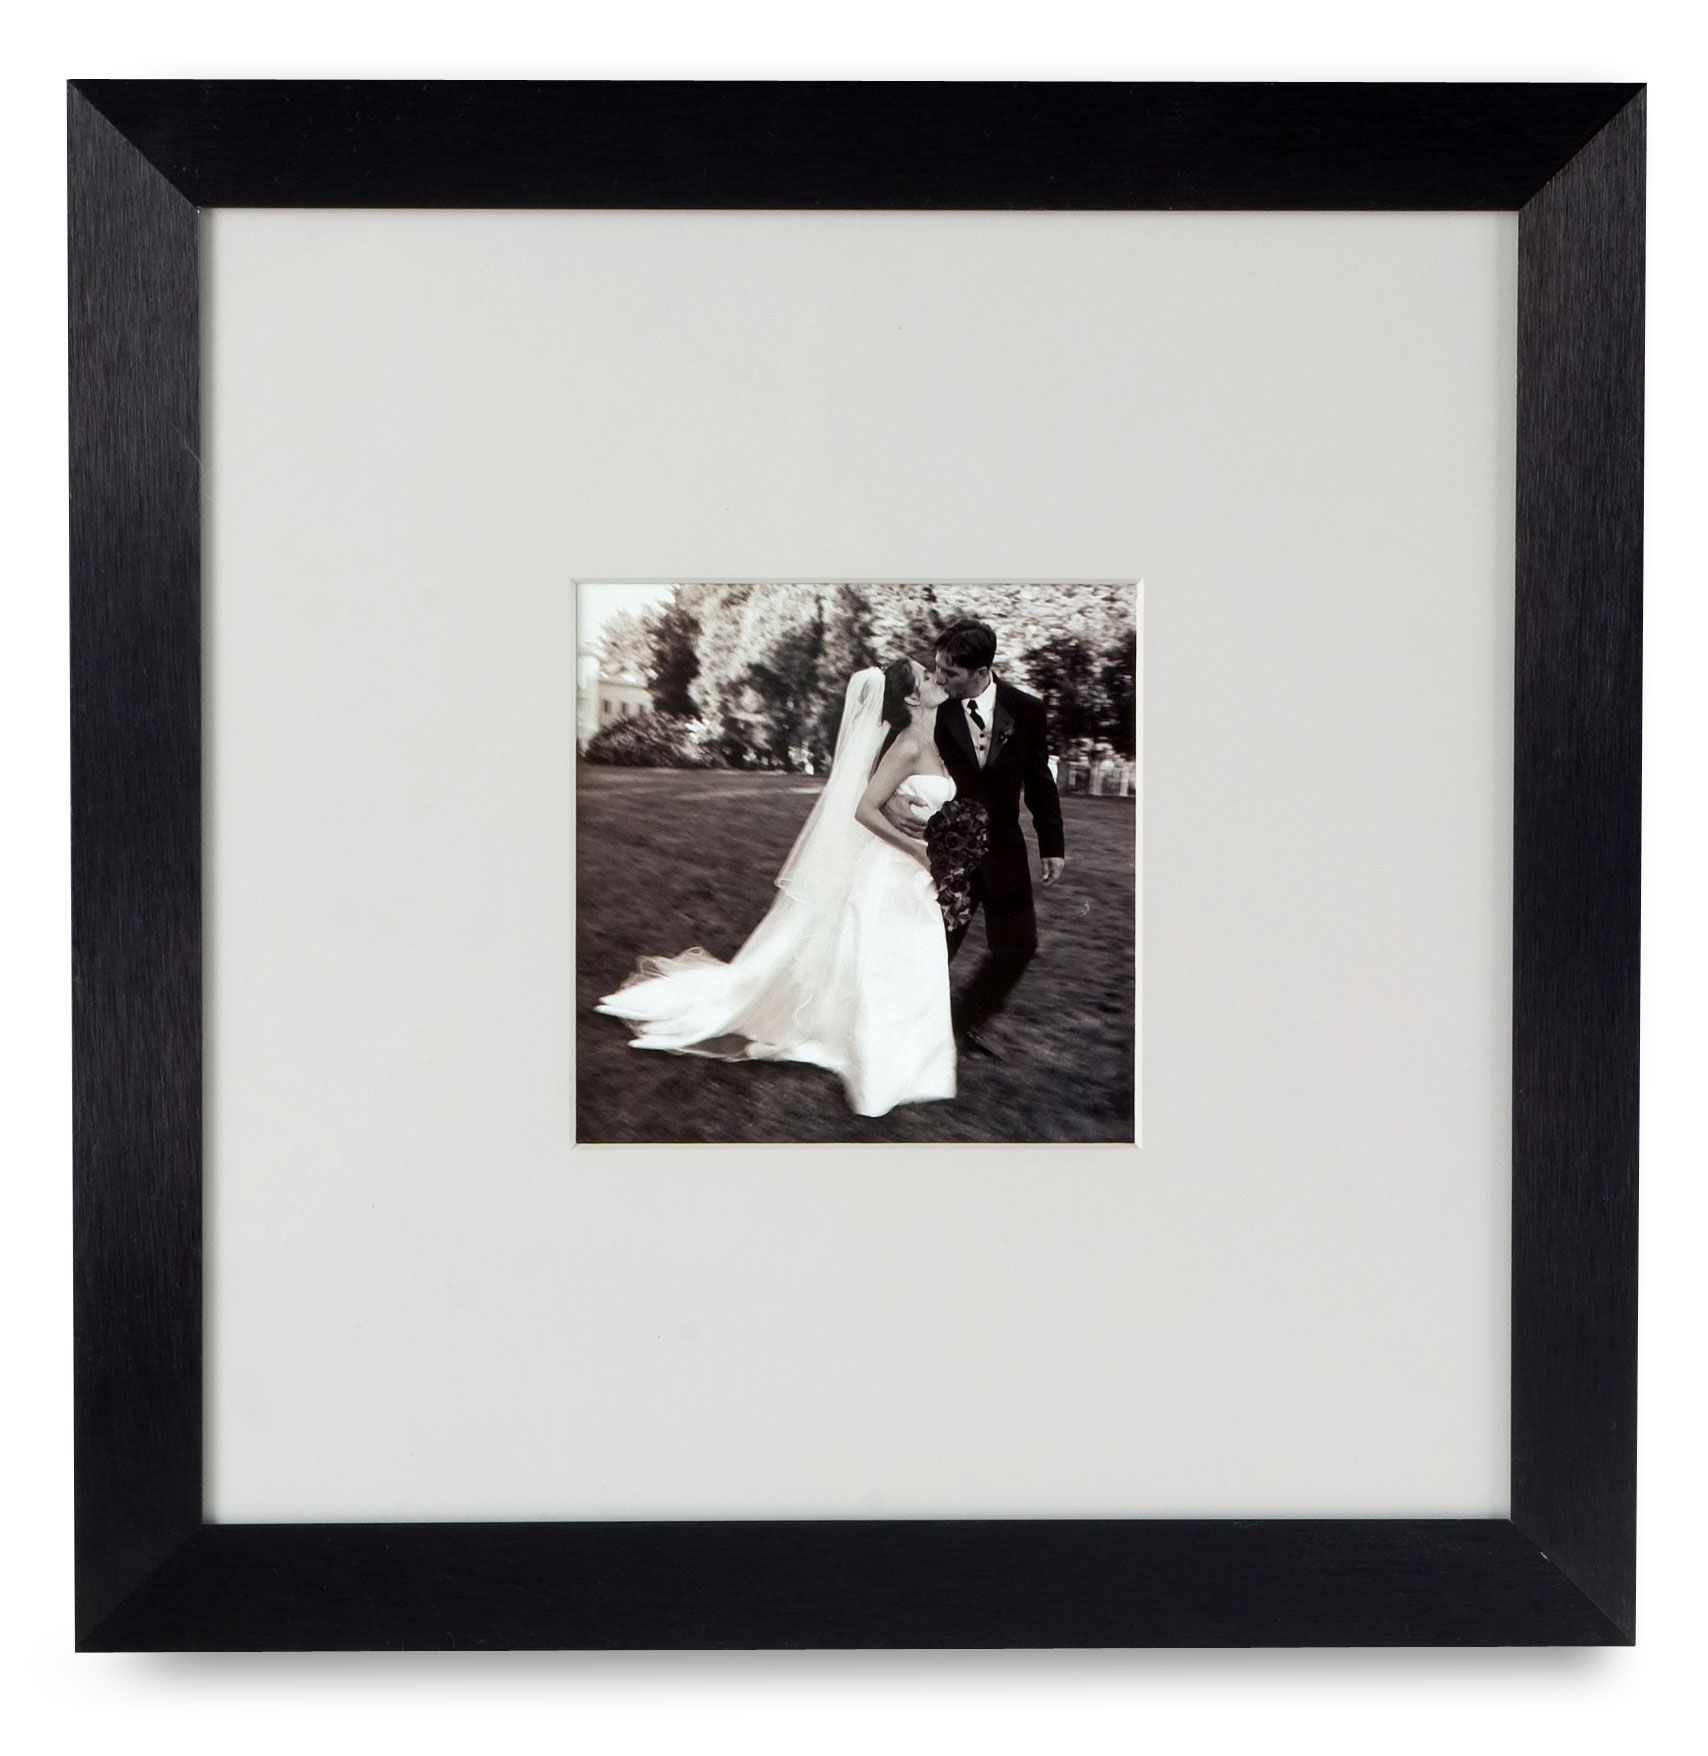 5 x 5 Matted Square Picture Frame for Wall Mount, with White Mat ...